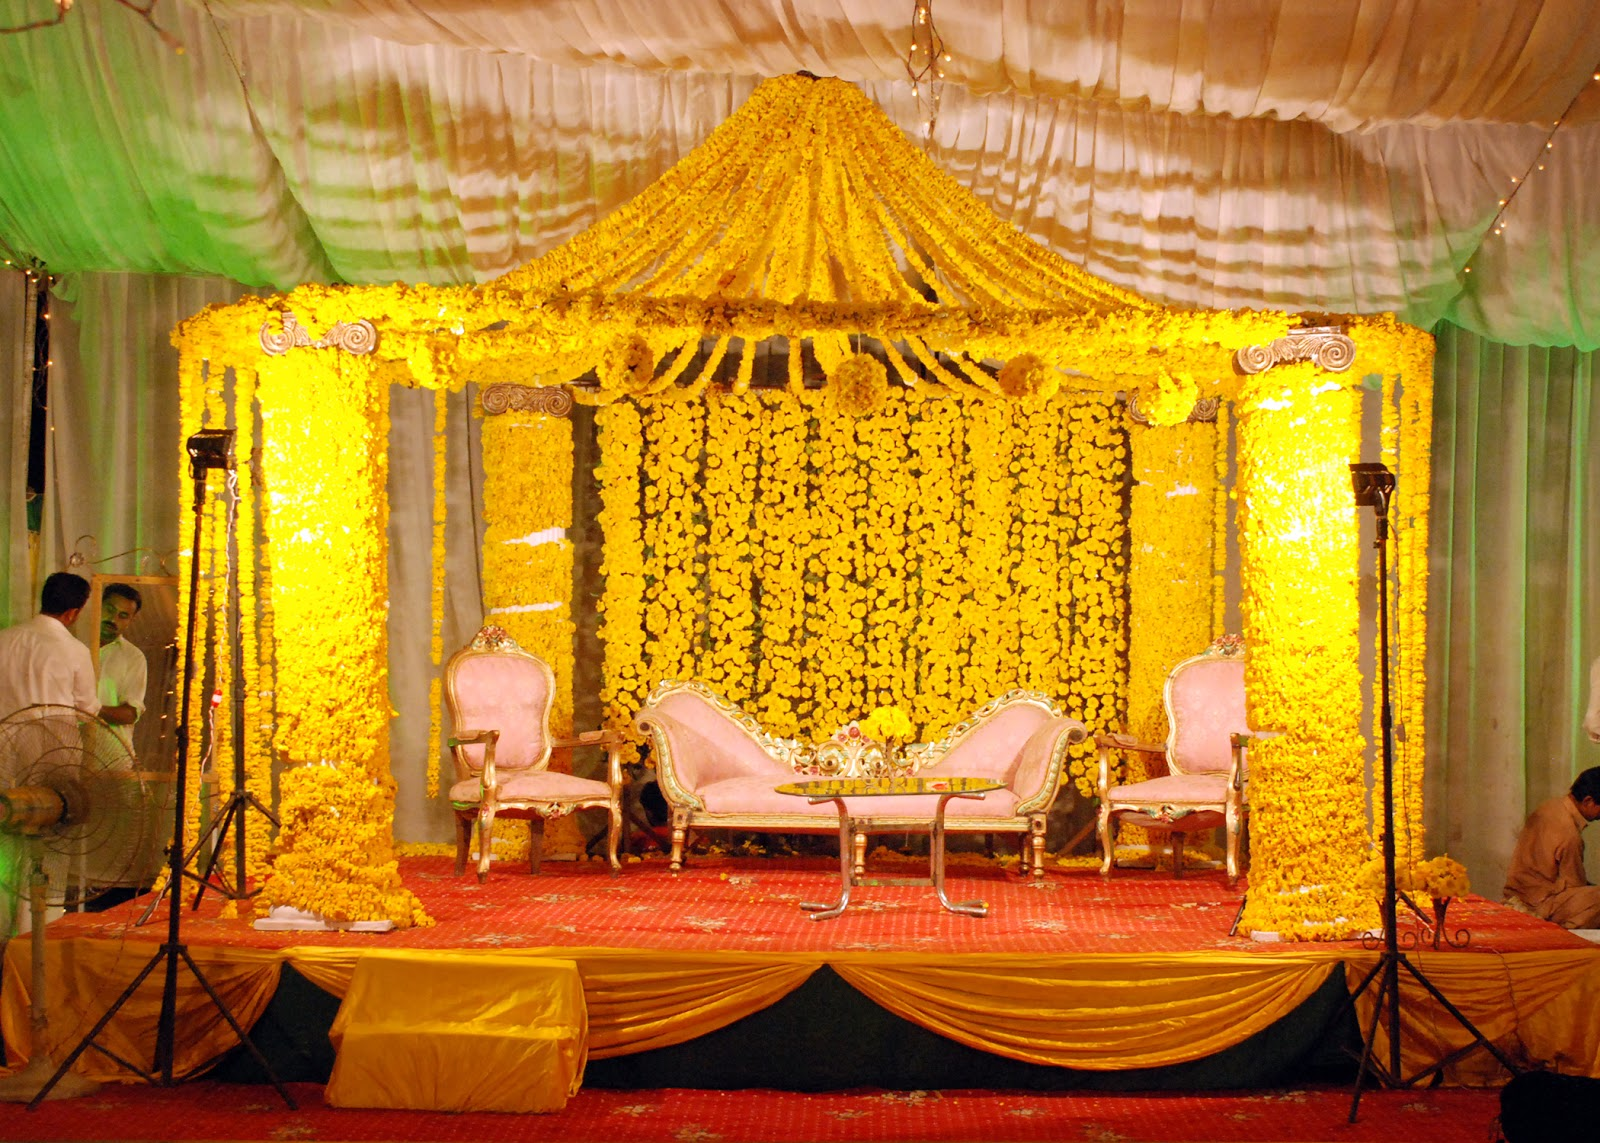 Best mehndi stage decoration ideas designs 2015 images hd for Mehndi decoration